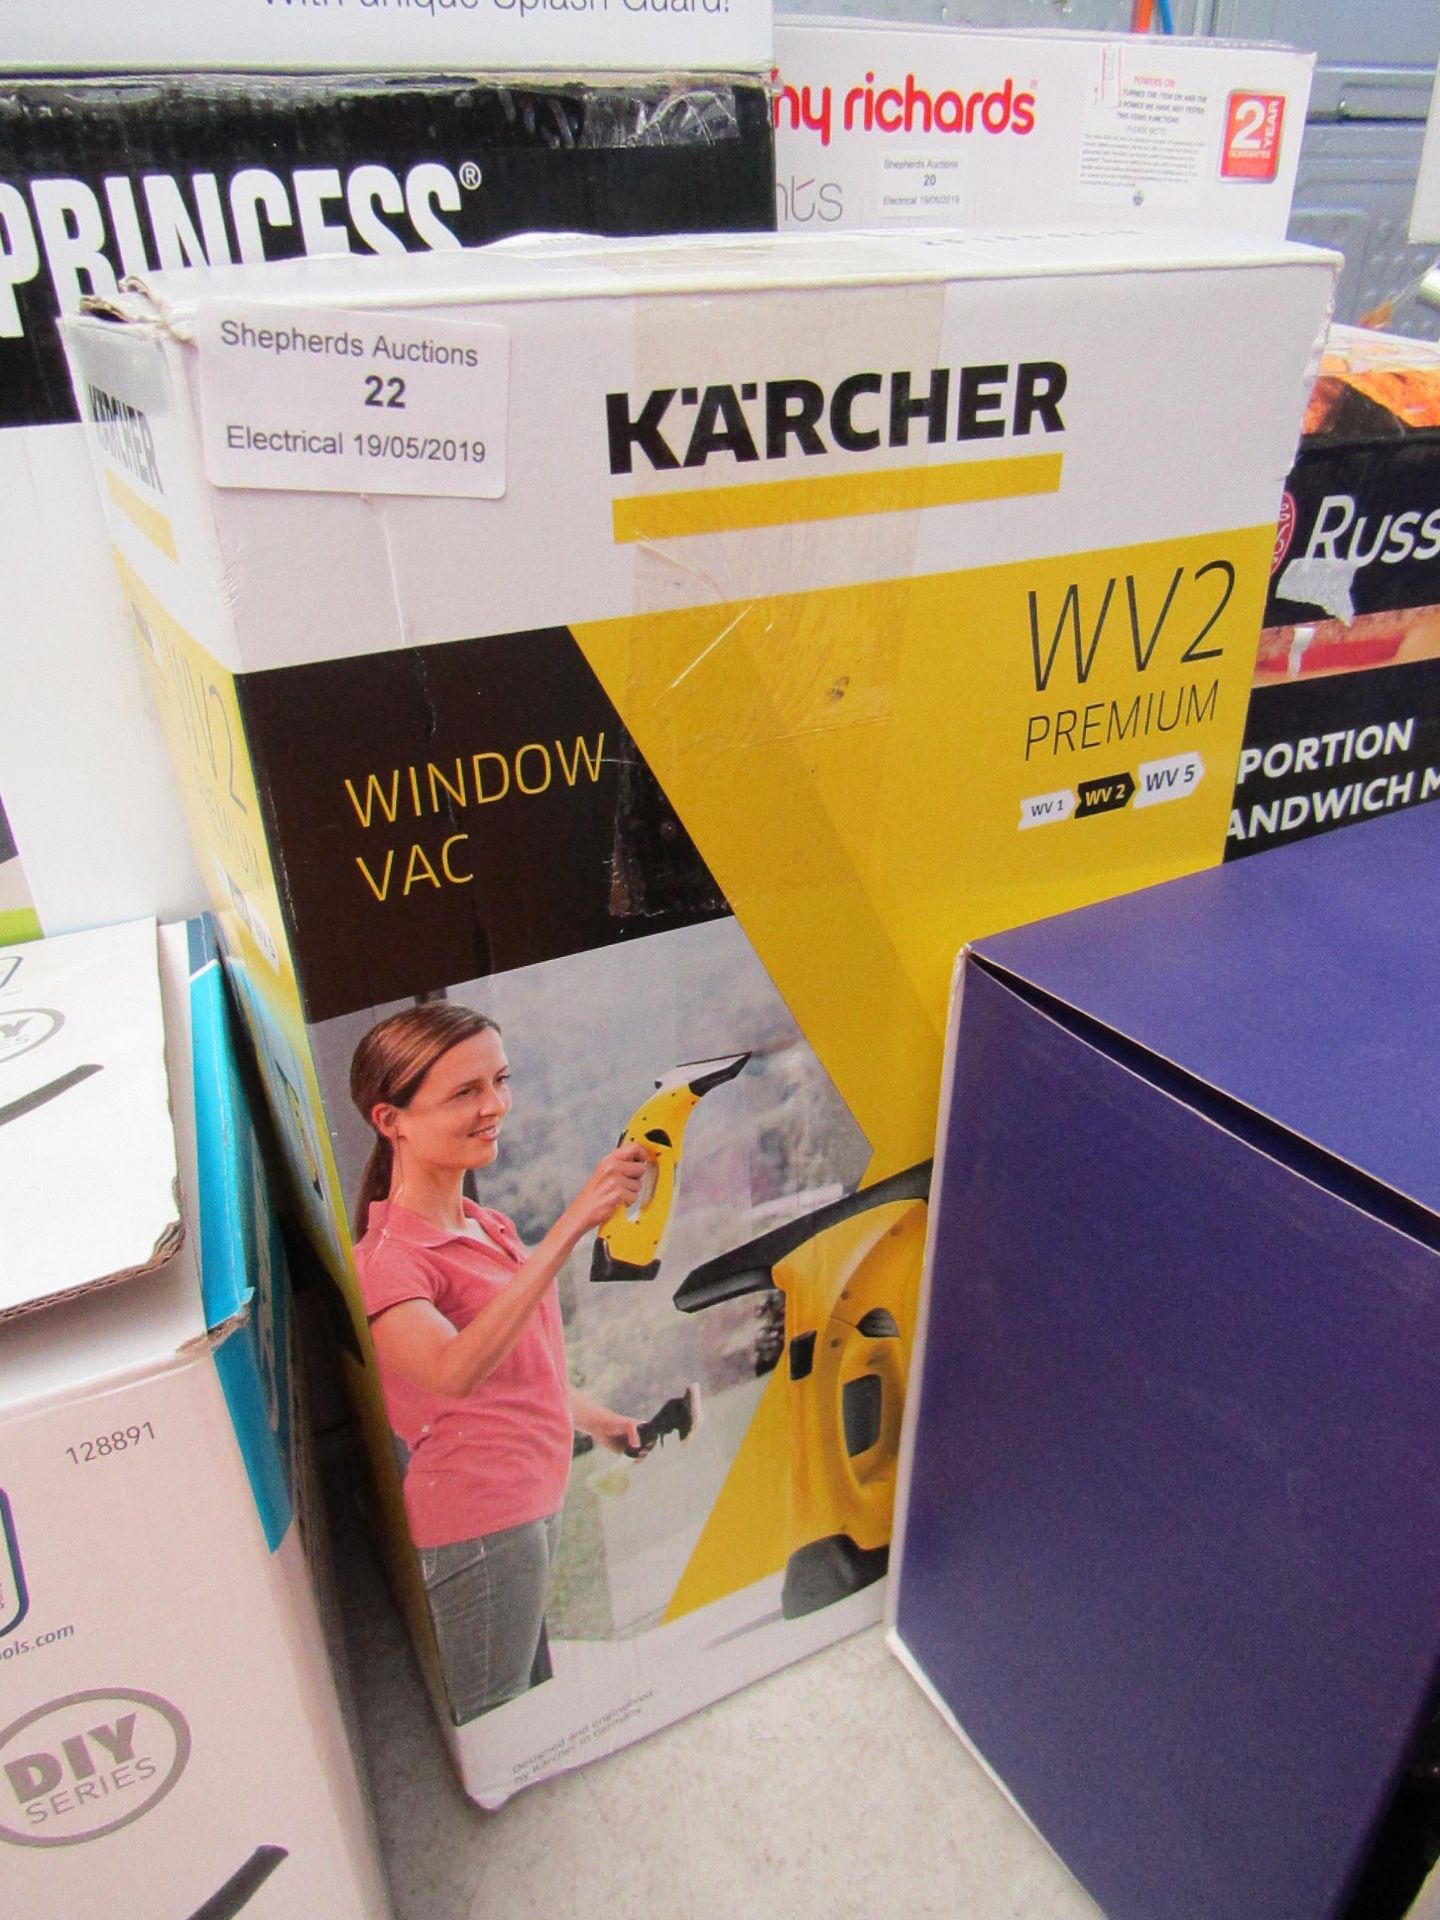 Lot 22 - Karcher WV2 Premium, Tested Working & Boxed